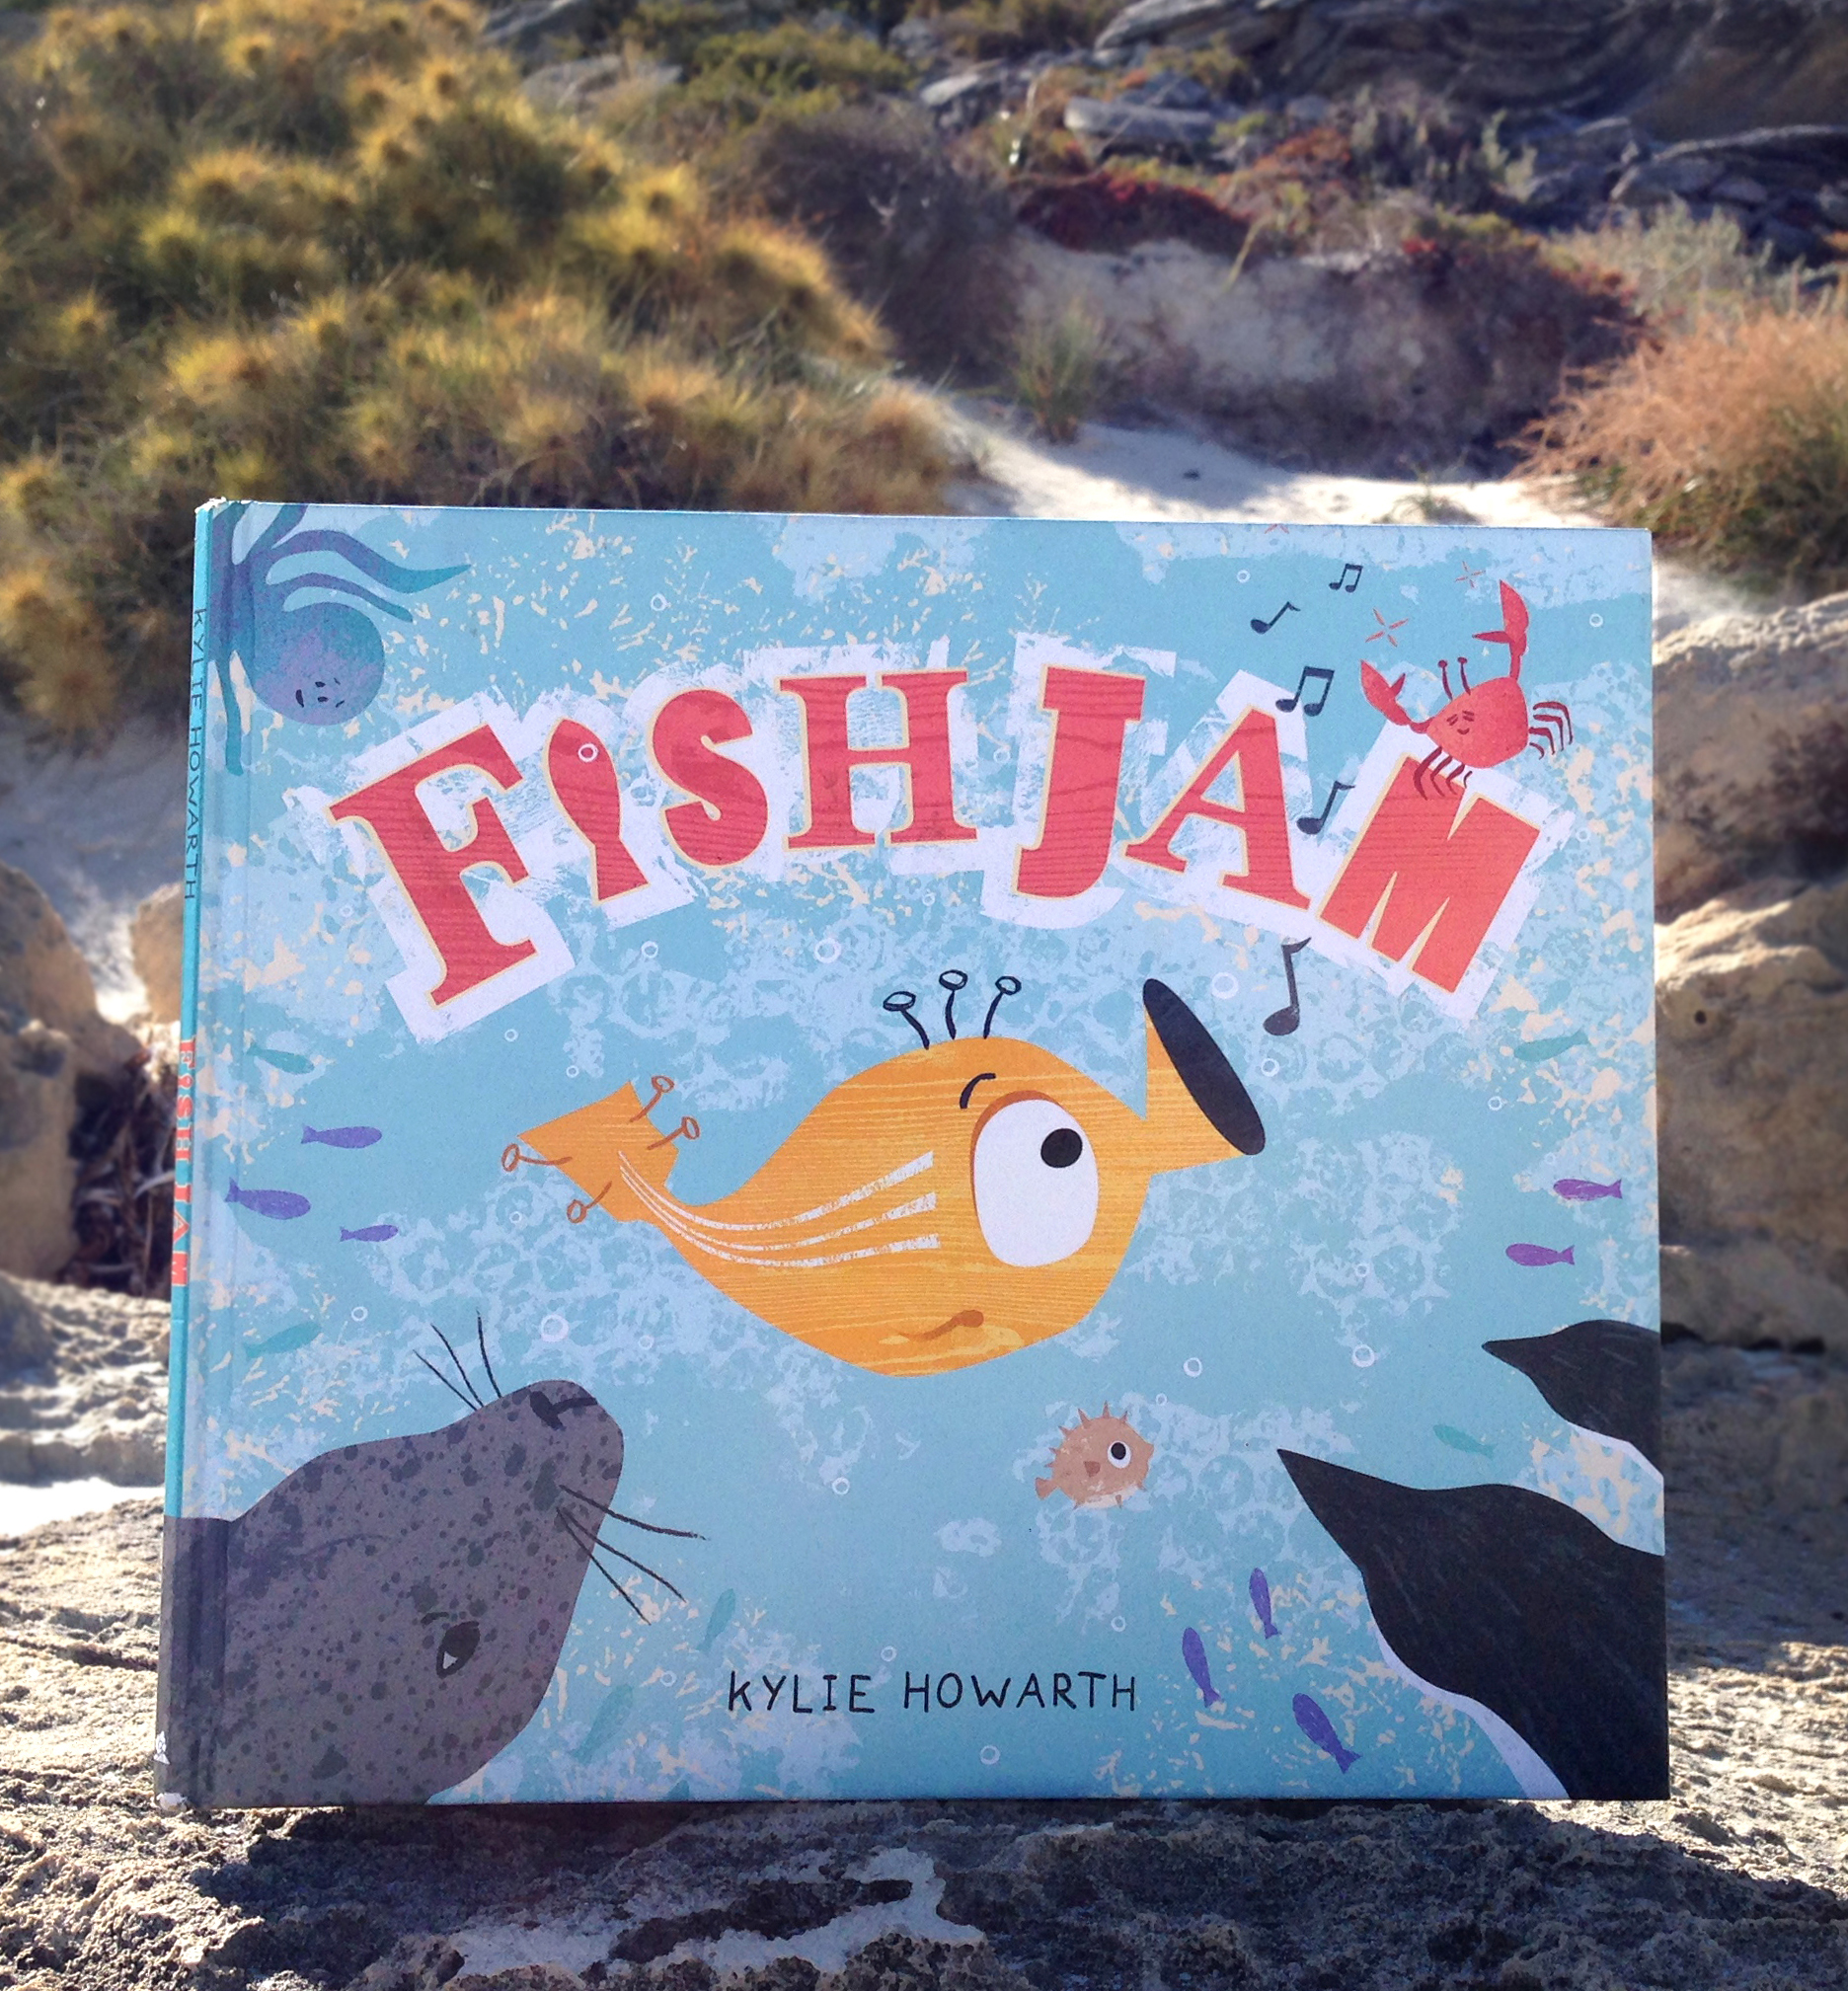 Fish Jam - Picture Book by Kylie Howarth